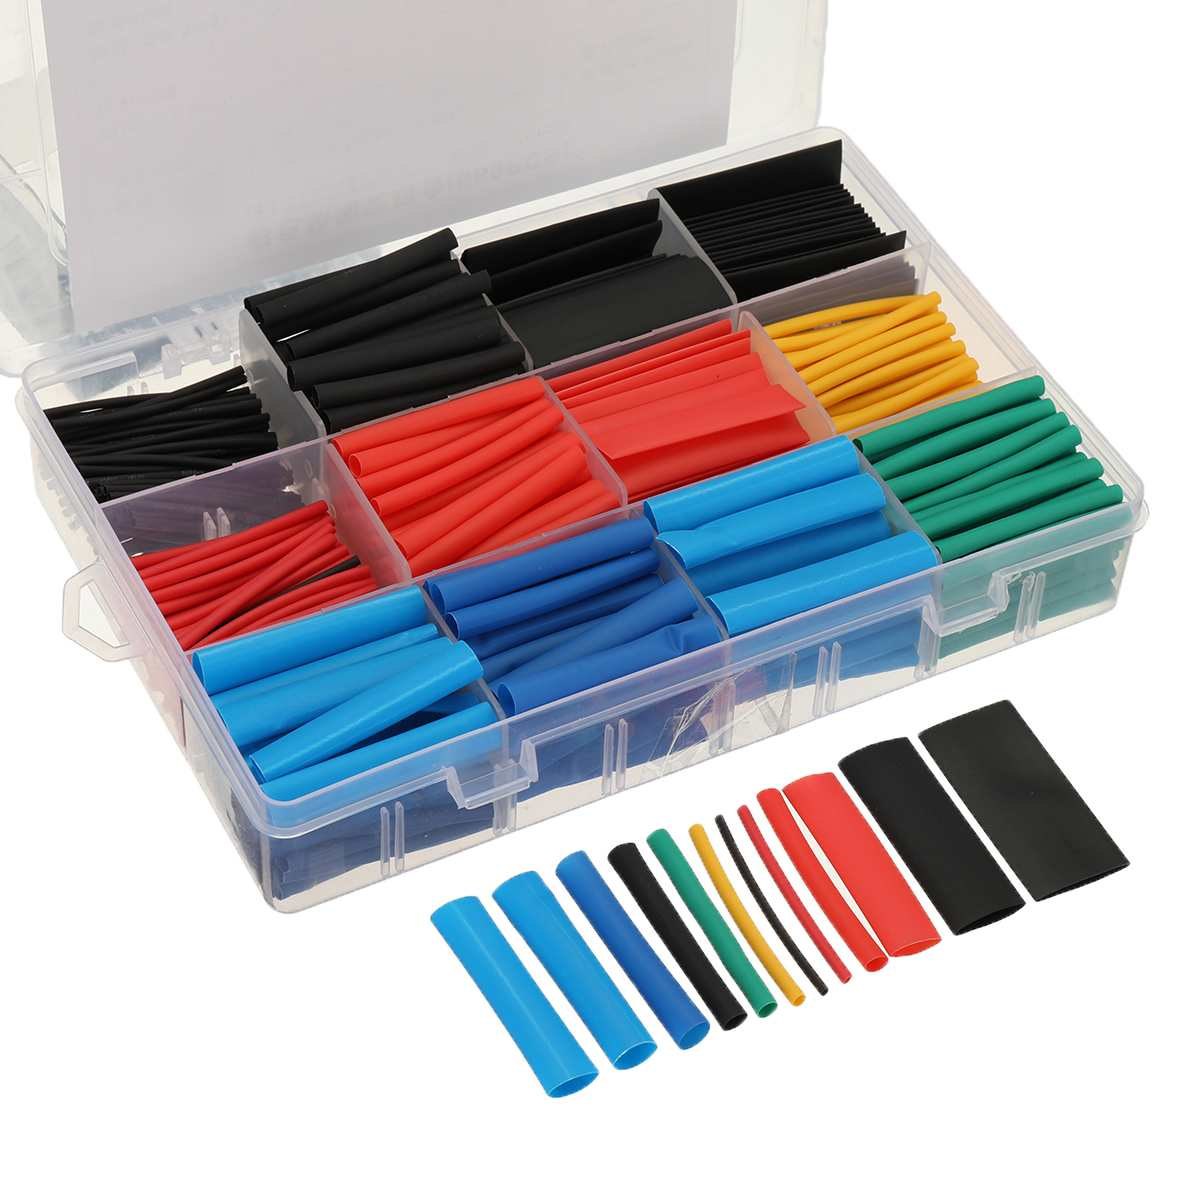 560Pcs Heat Shrink Tubing 2:1 Electrical Car Wire Cable Wrap Assortment Sleeve